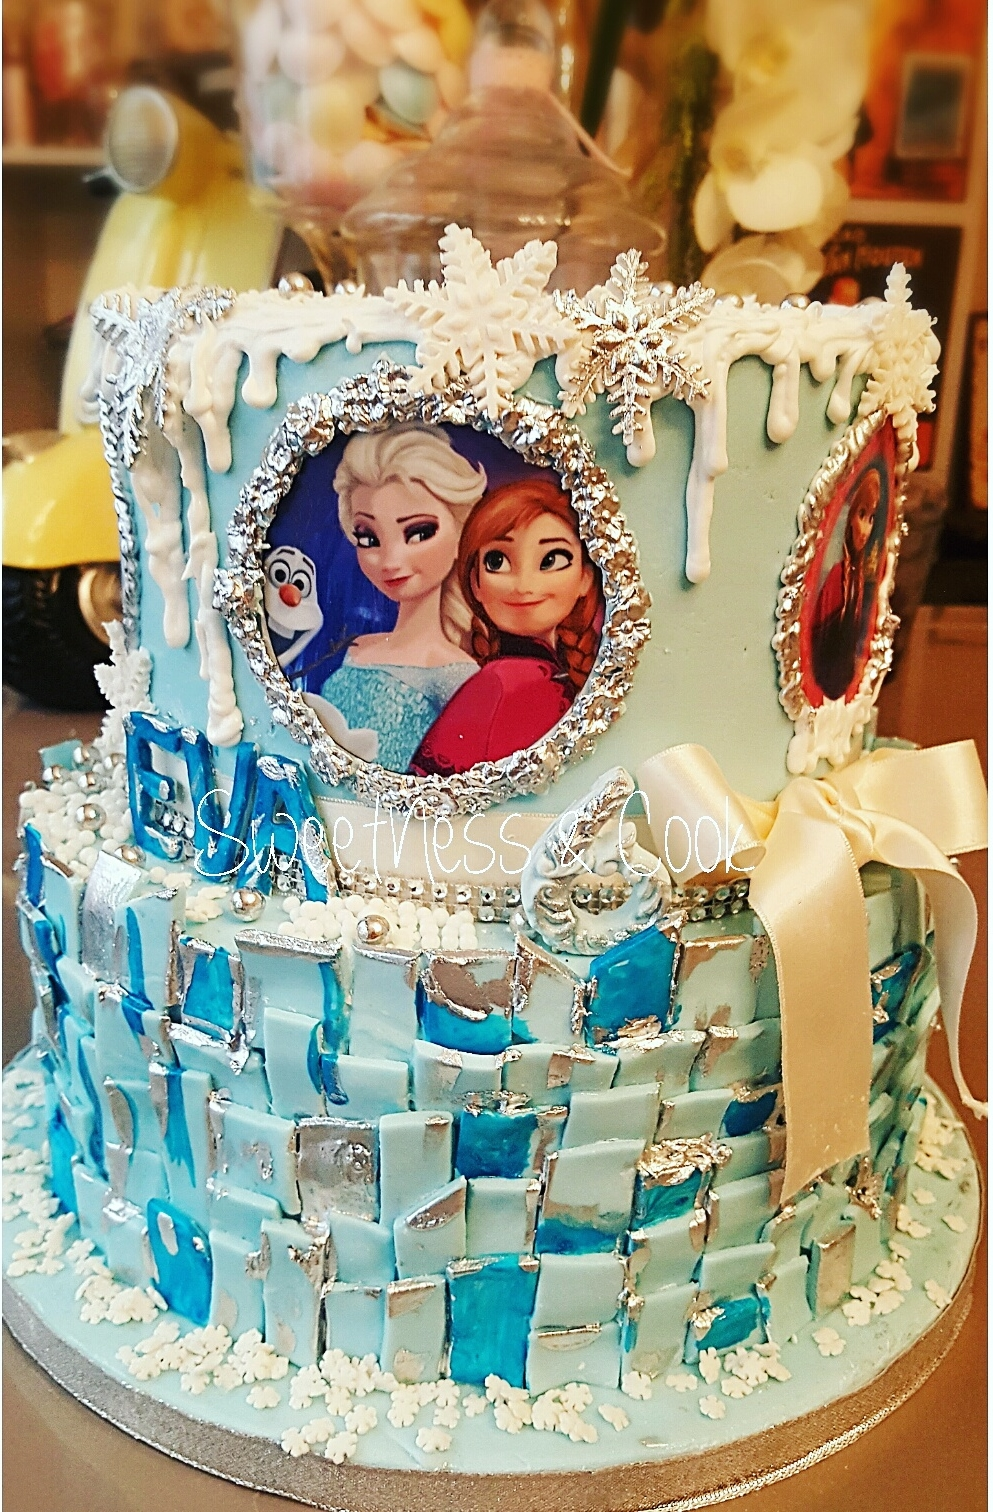 Cake Design Reine des neiges IV